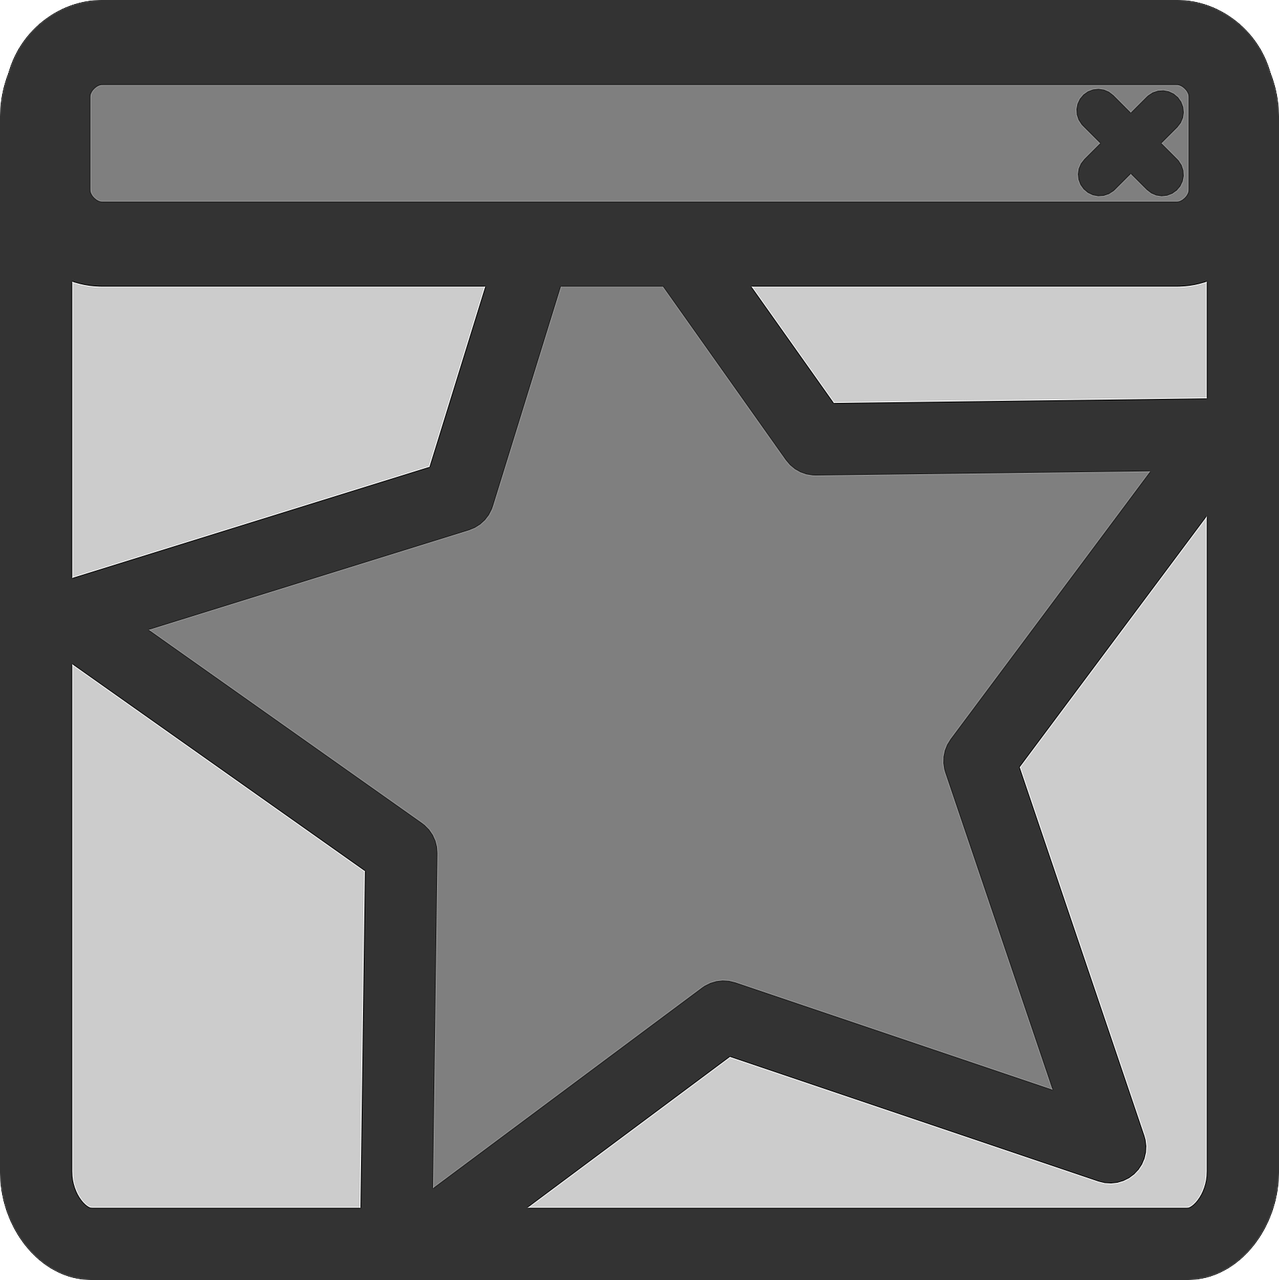 star picture icon free photo